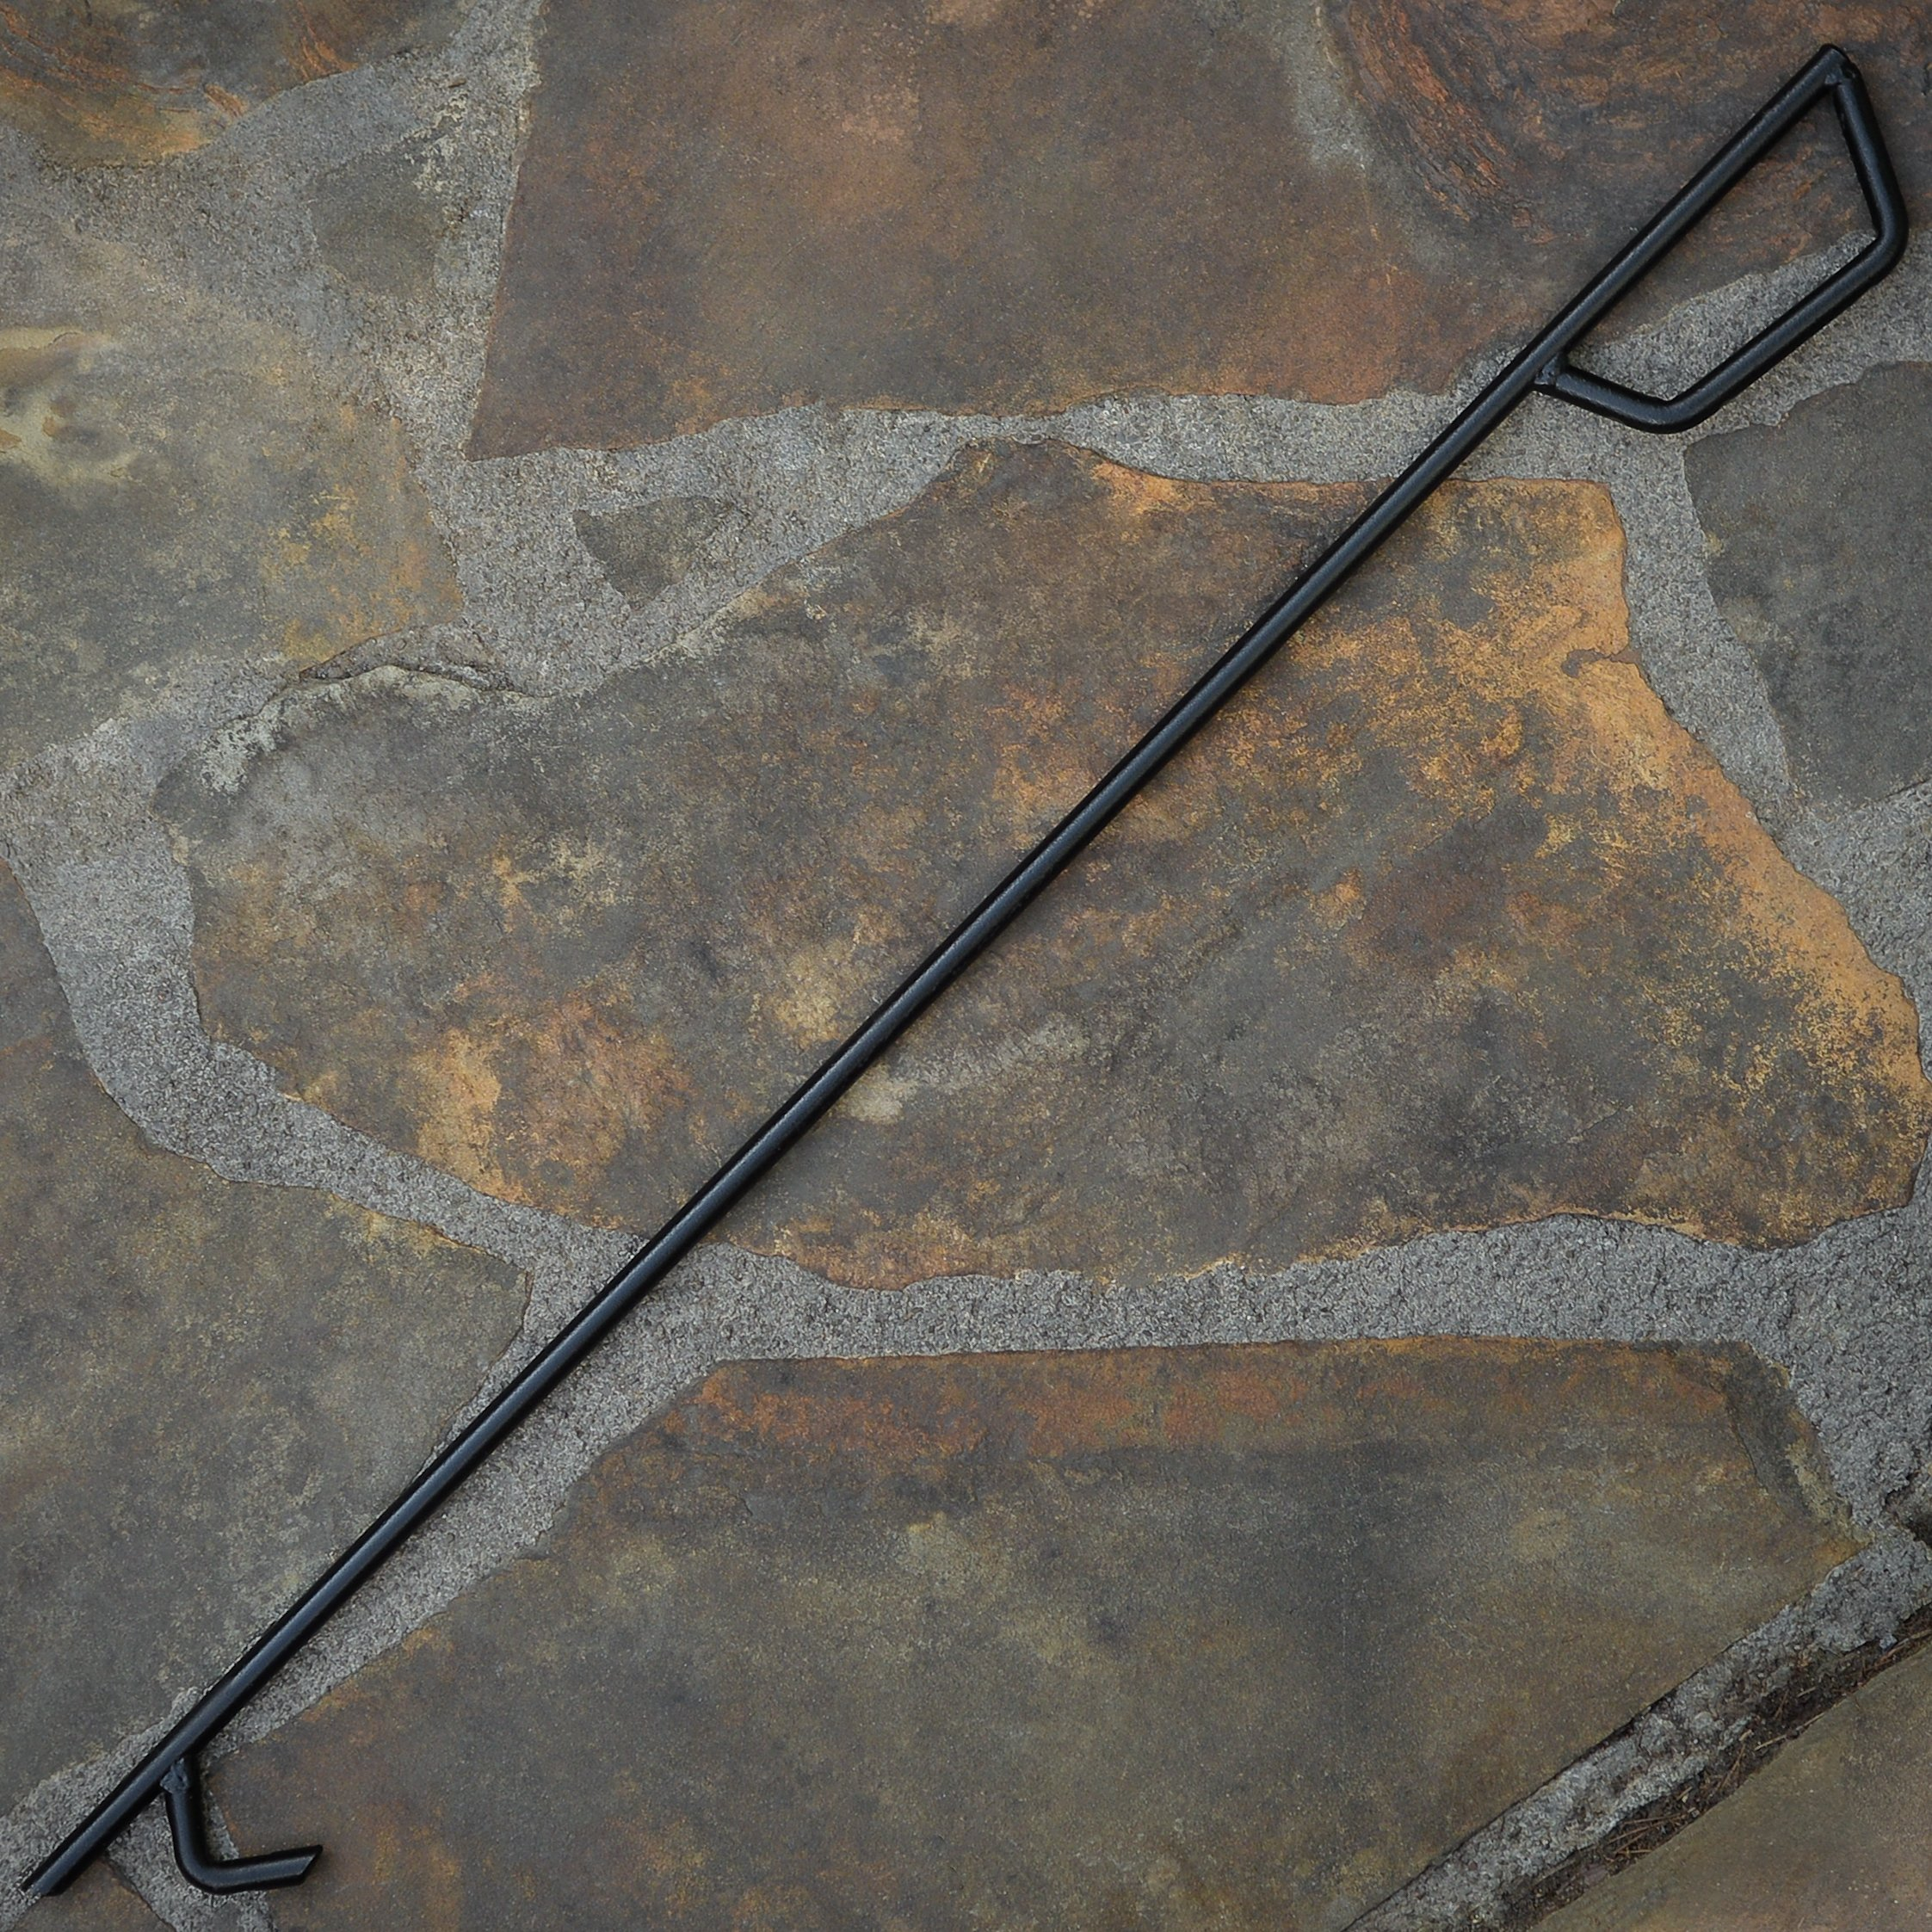 Heritage Products 24 Inch Heavy Duty Fire Poker - Made in the USA by Heritage Products (Image #2)